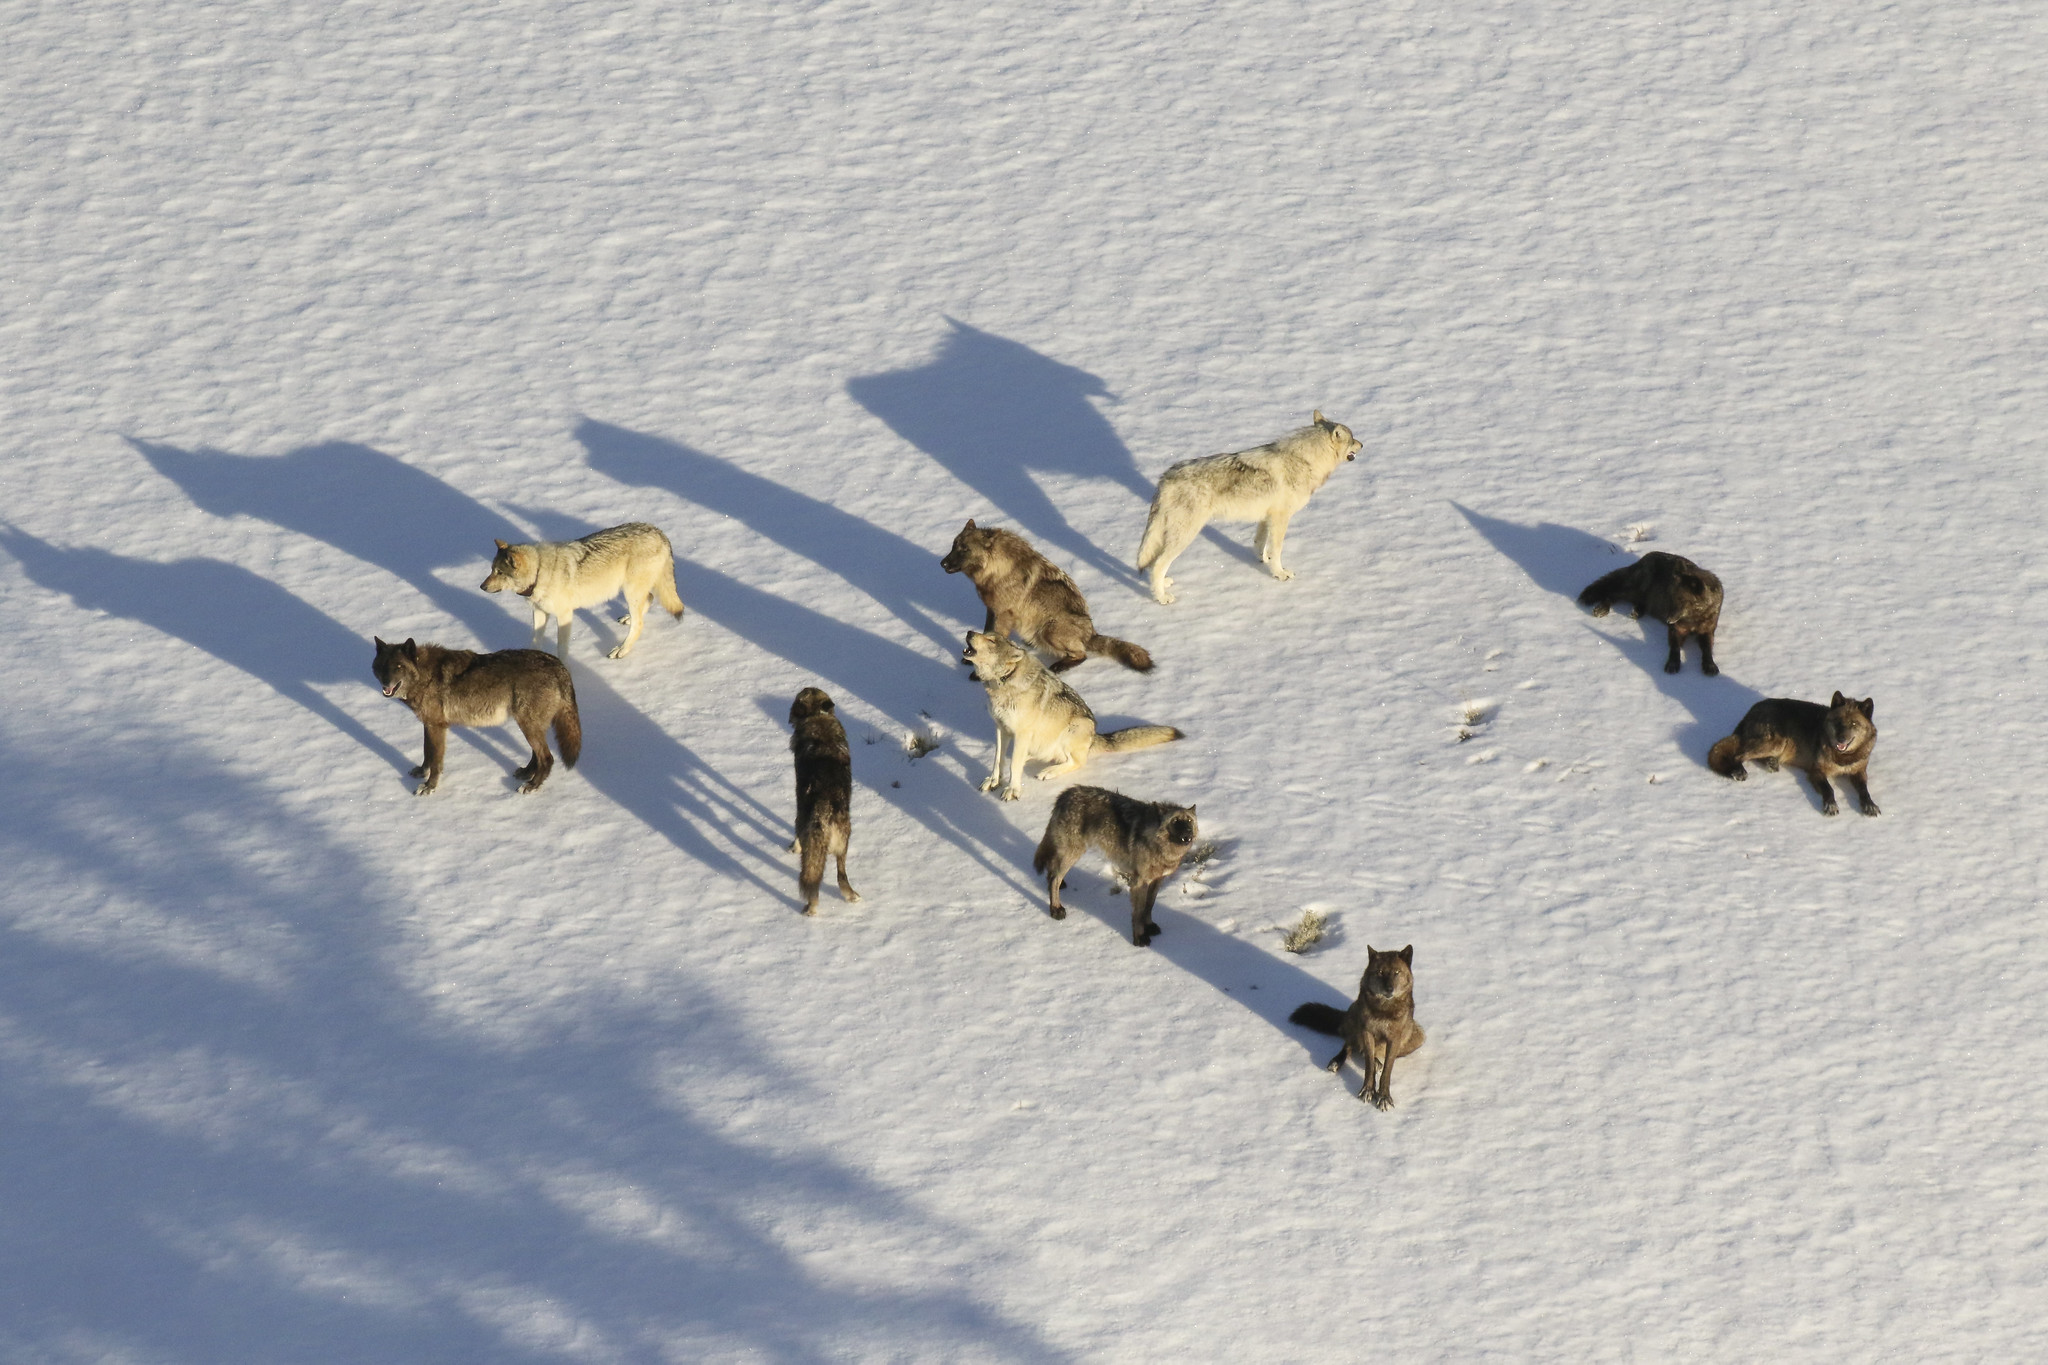 pack of wolves on a snowy landscape